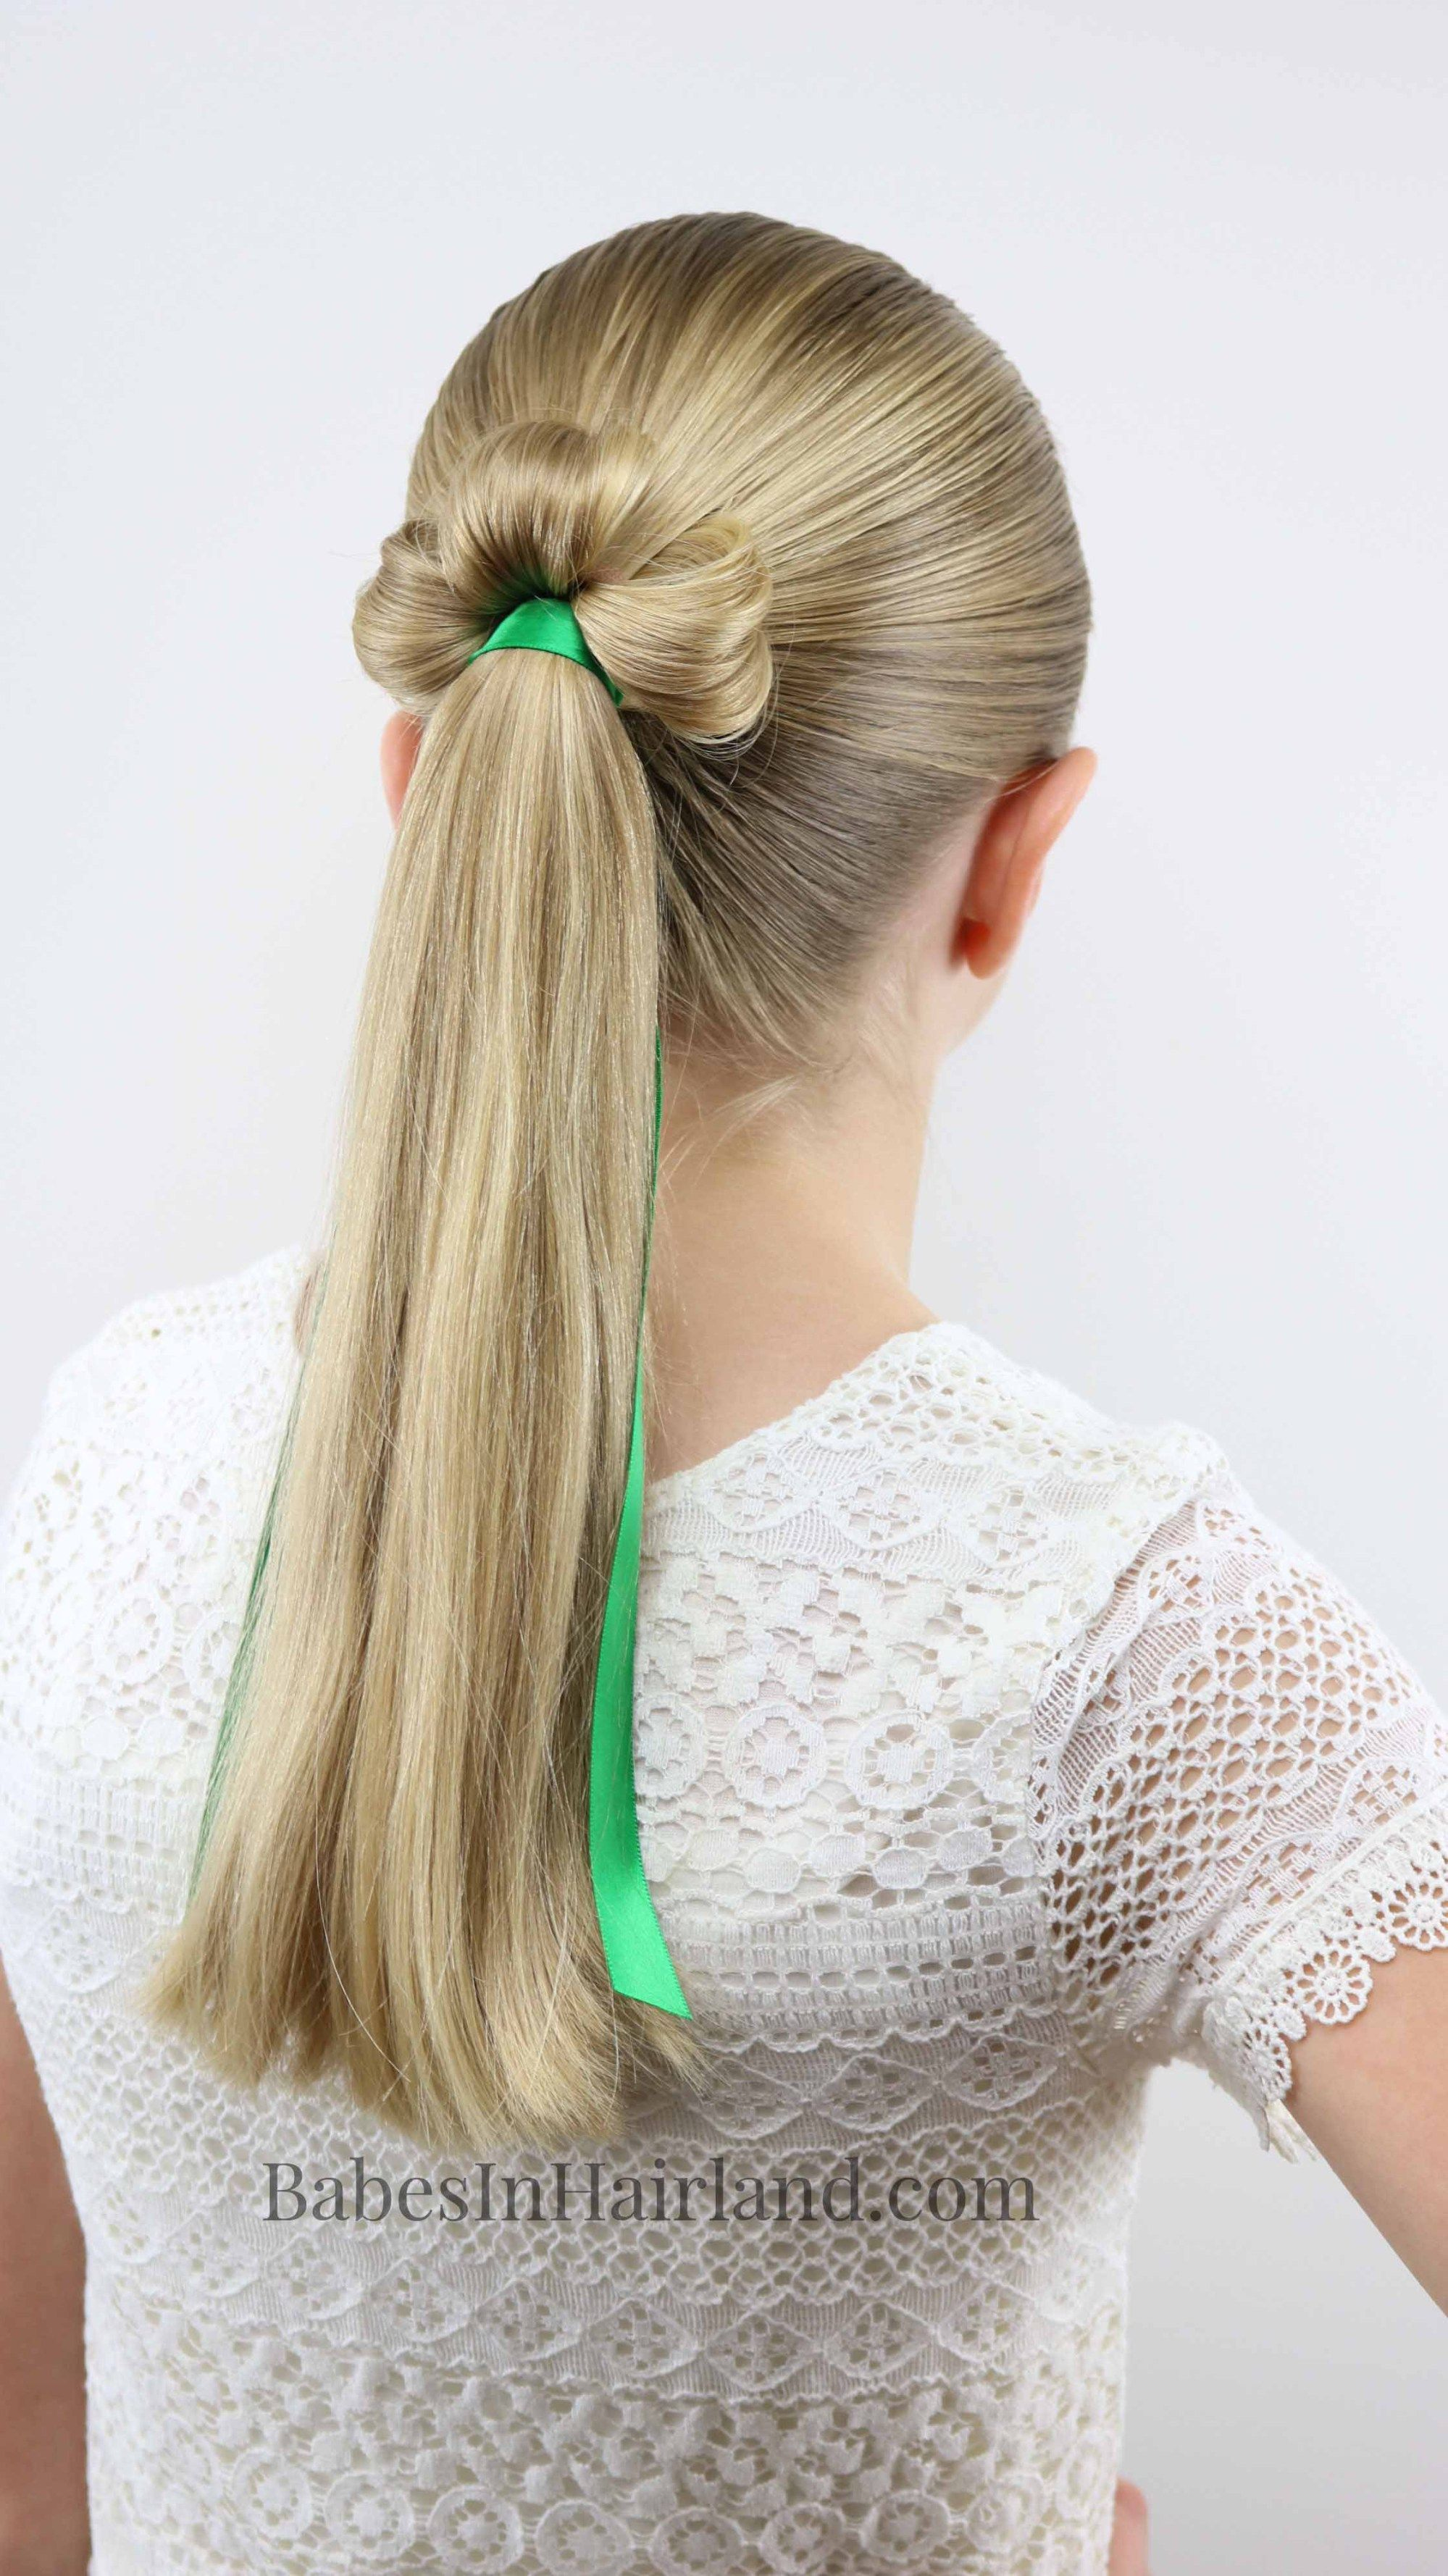 This Is The Cutest St Patrick S Day Hairstyle I Ve Seen Try A Shamrock Ponytail For Luck From Babesinhairla Hair Styles Cool Braid Hairstyles Kids Hairstyles